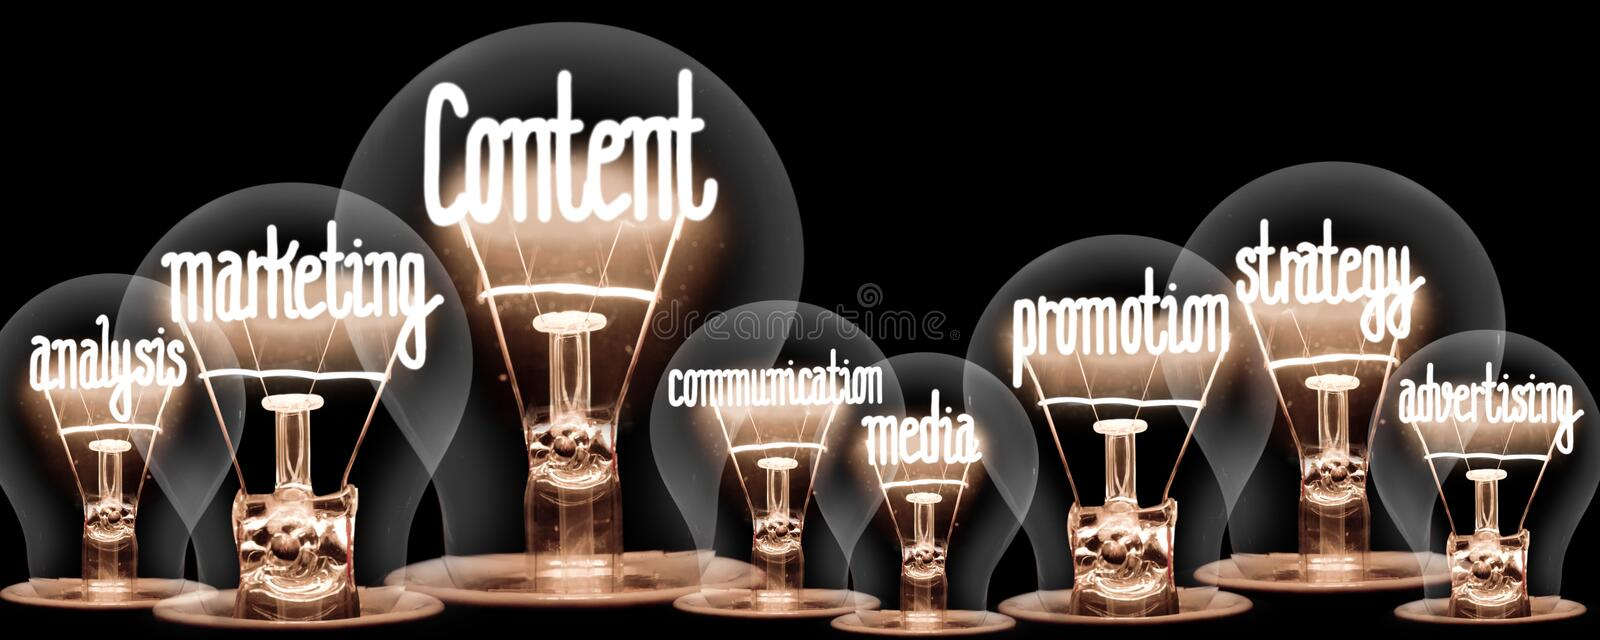 Light Bulbs with Content Concept stock images